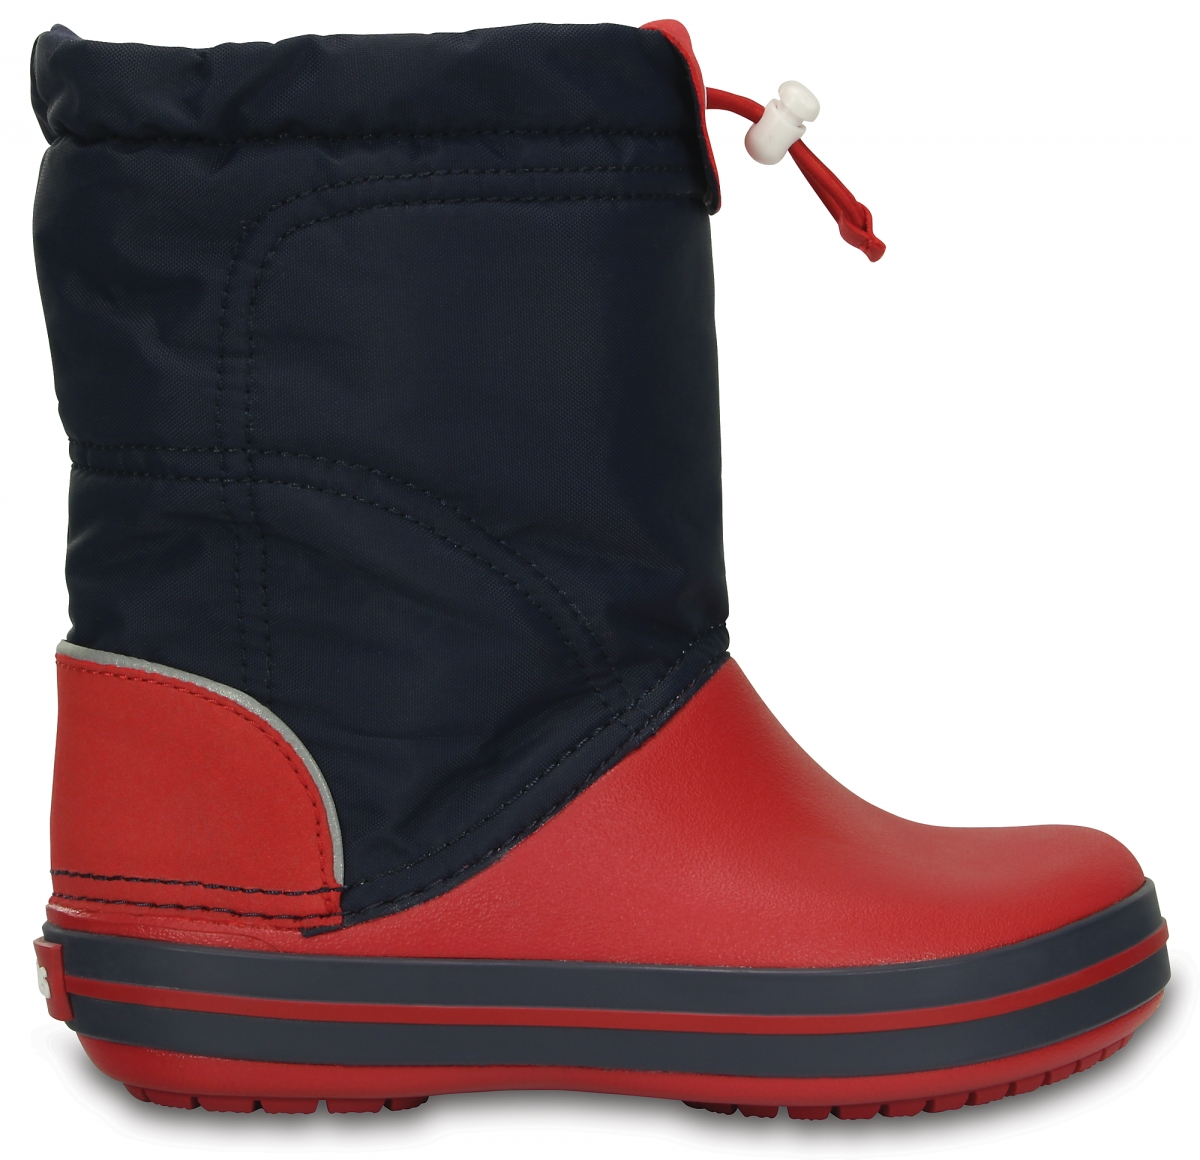 Crocs Crocband LodgePoint Boot Kids Navy/Red, J3 (34-35)